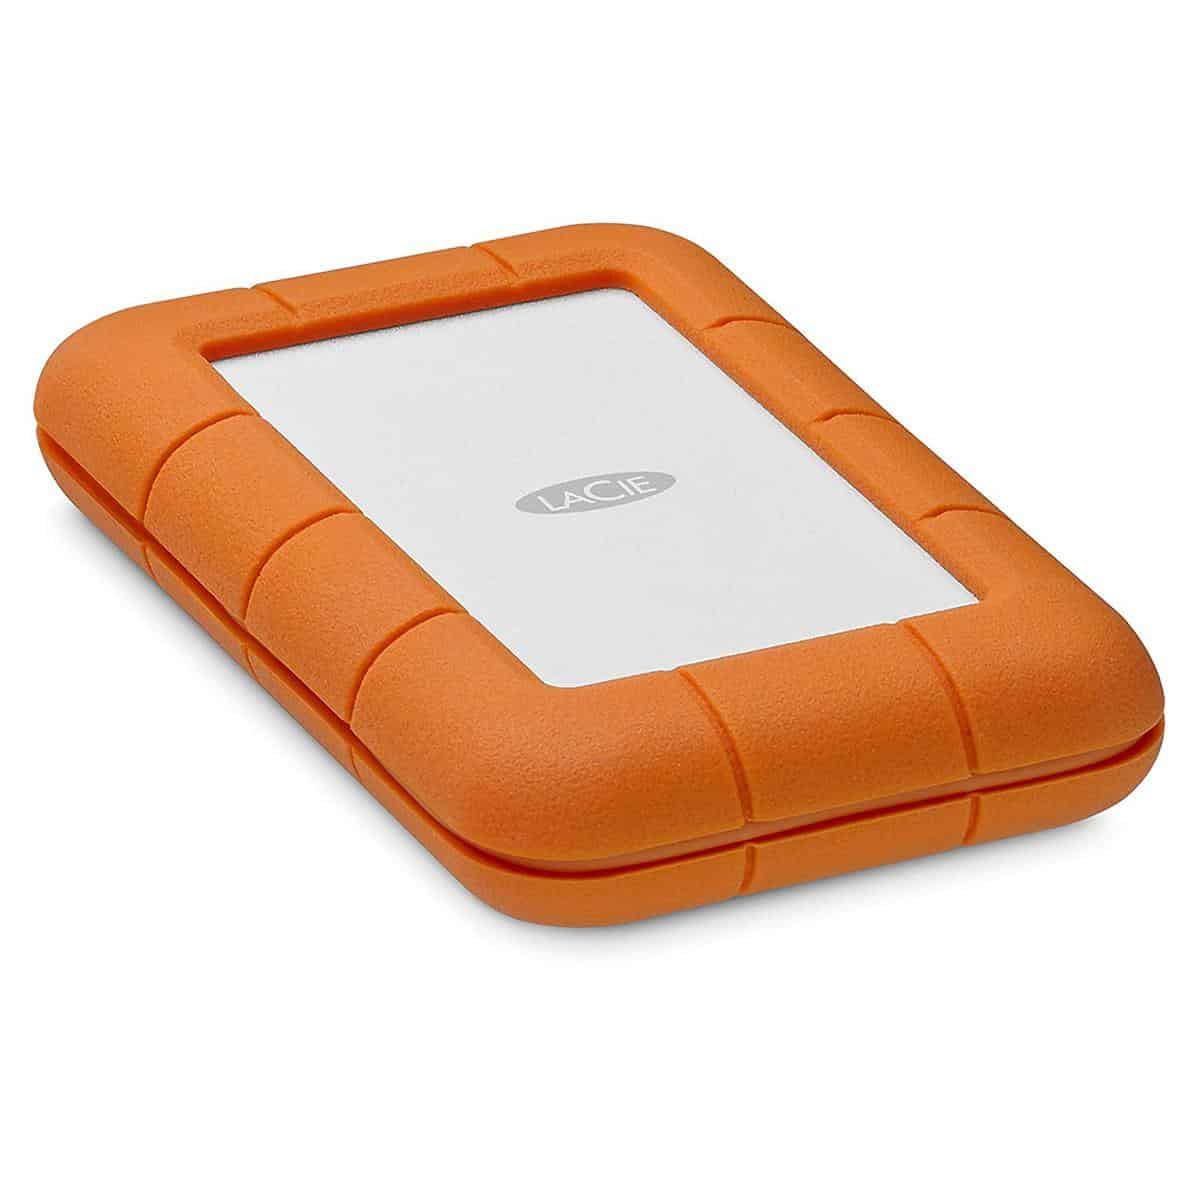 Best Rugged External Hard Drive